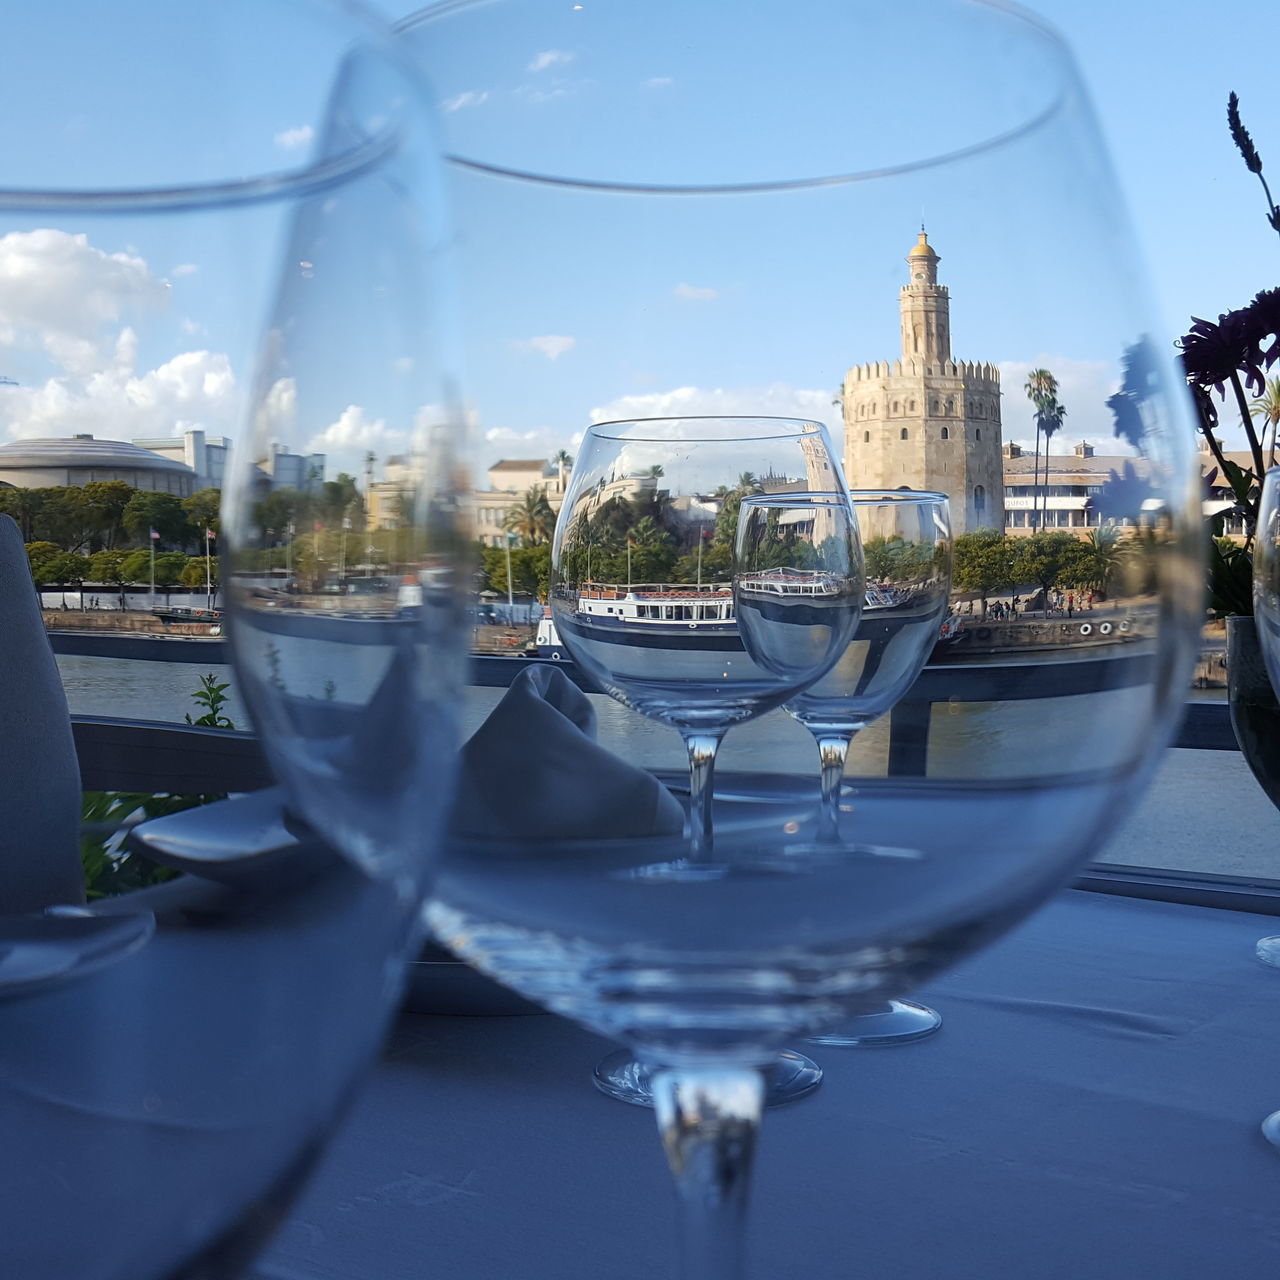 Wineglasses On Table Against Historic Building In City